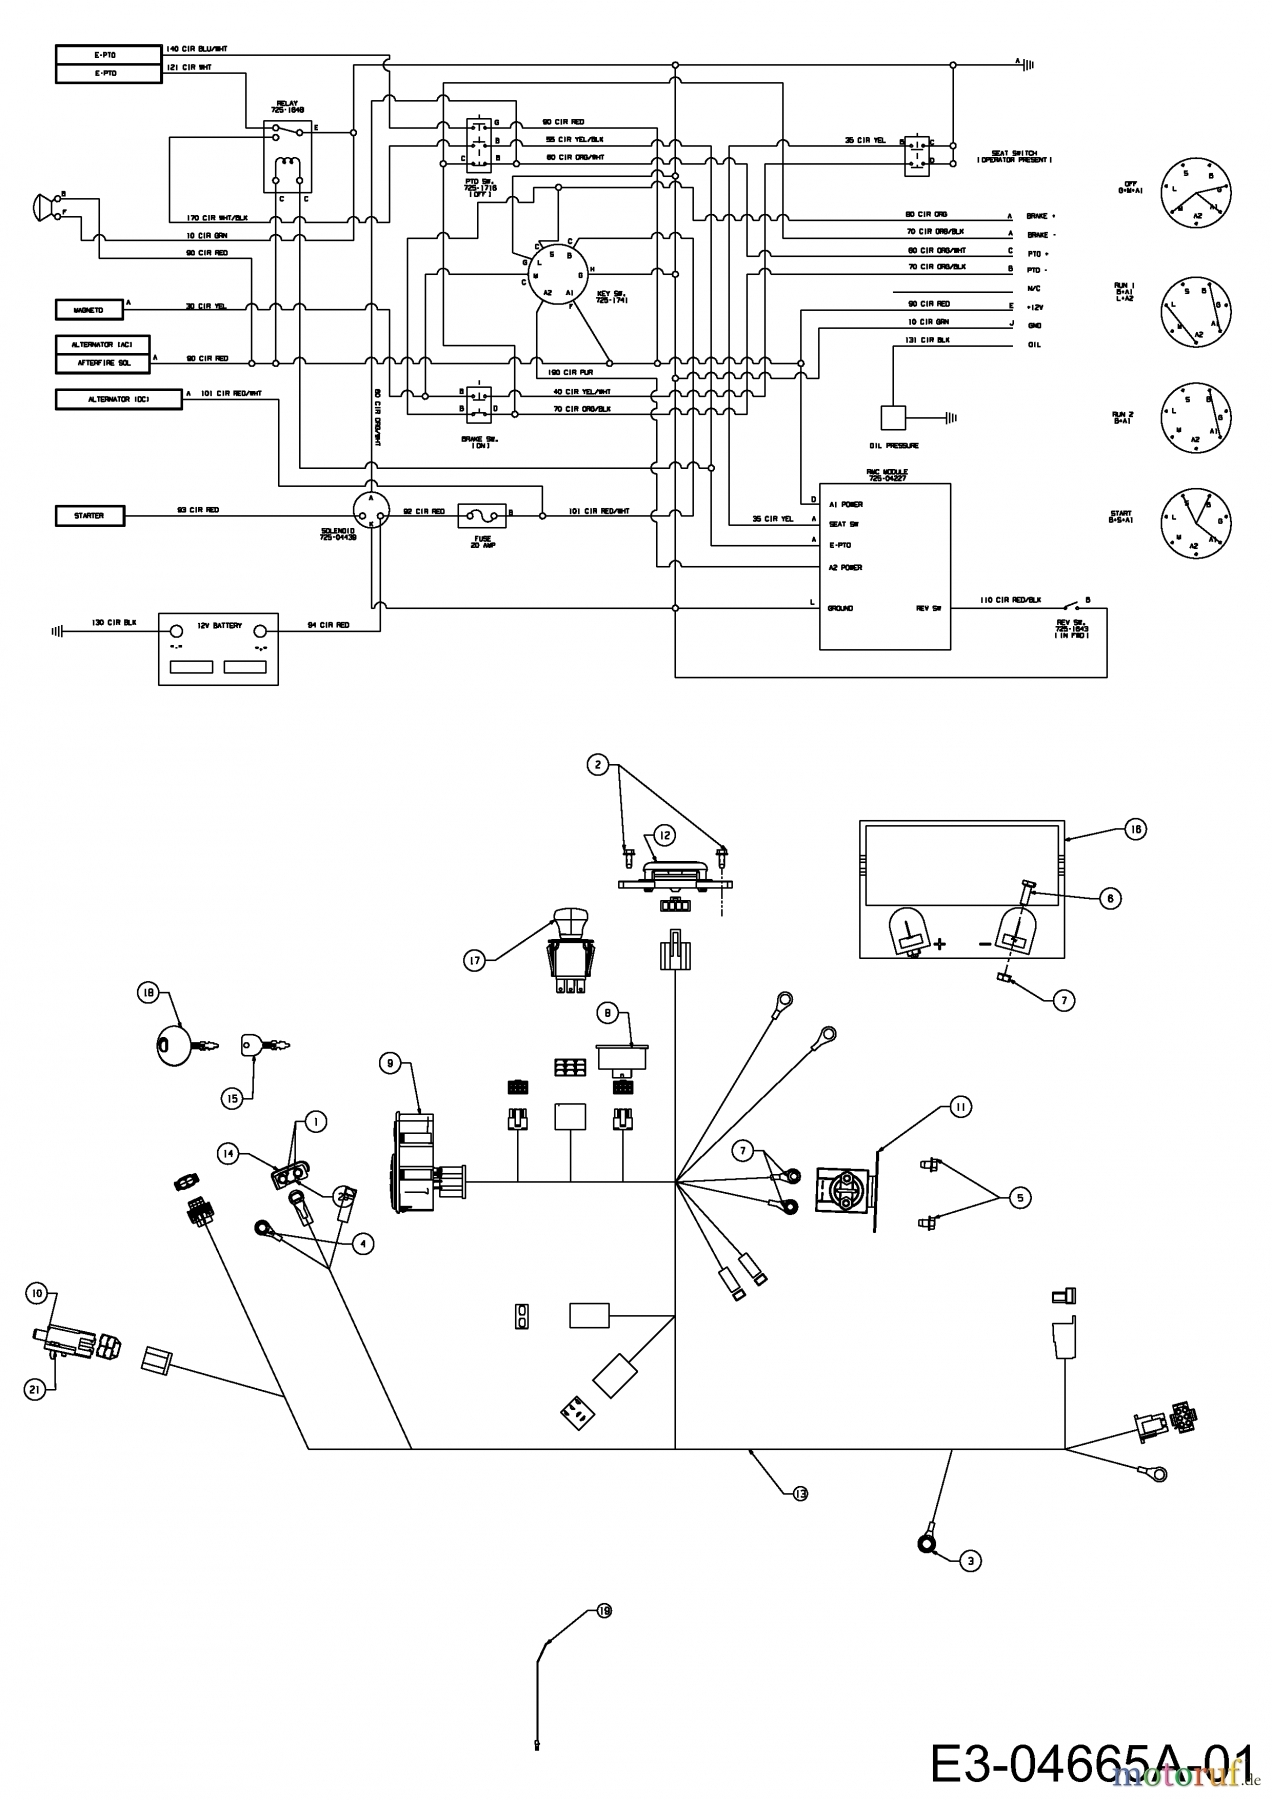 wiring diagram for cub cadet 17wf2ack010